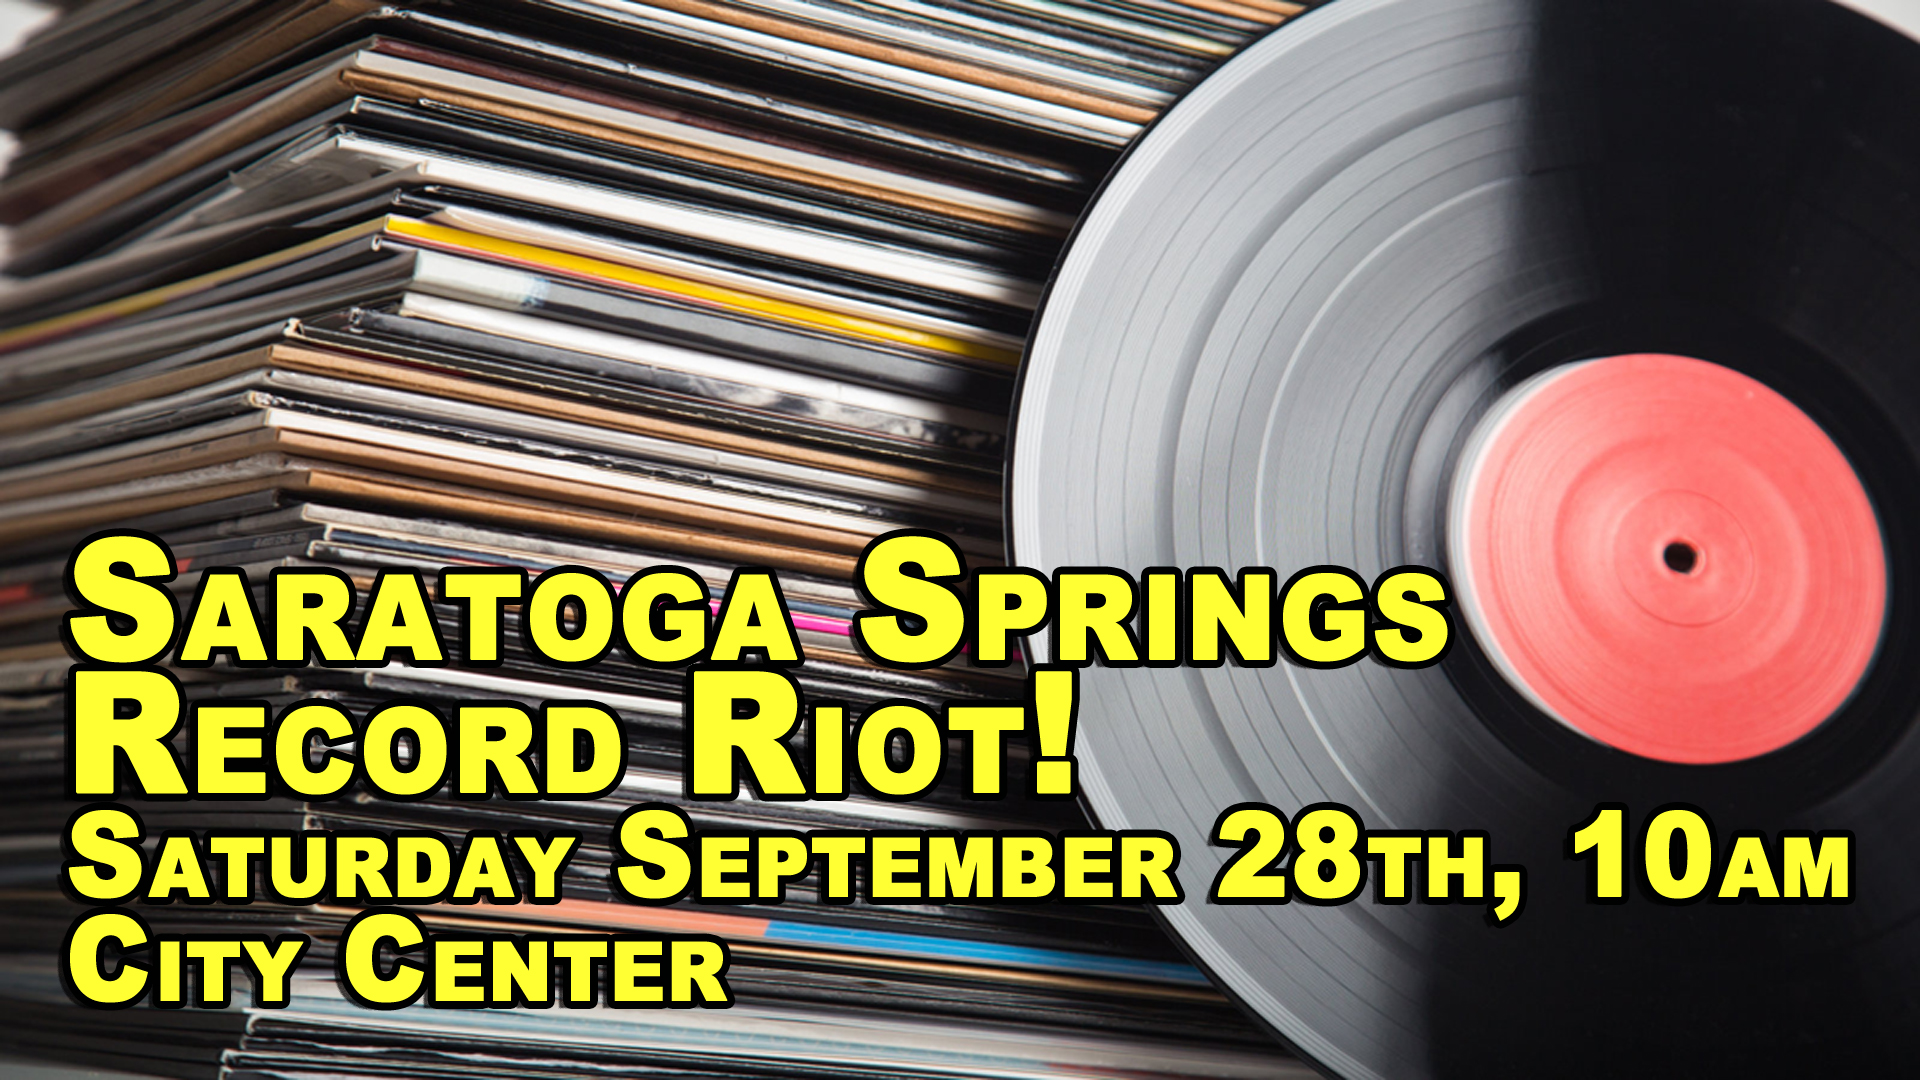 Record Riot! – Saratoga Springs, NY – Saturday September 28